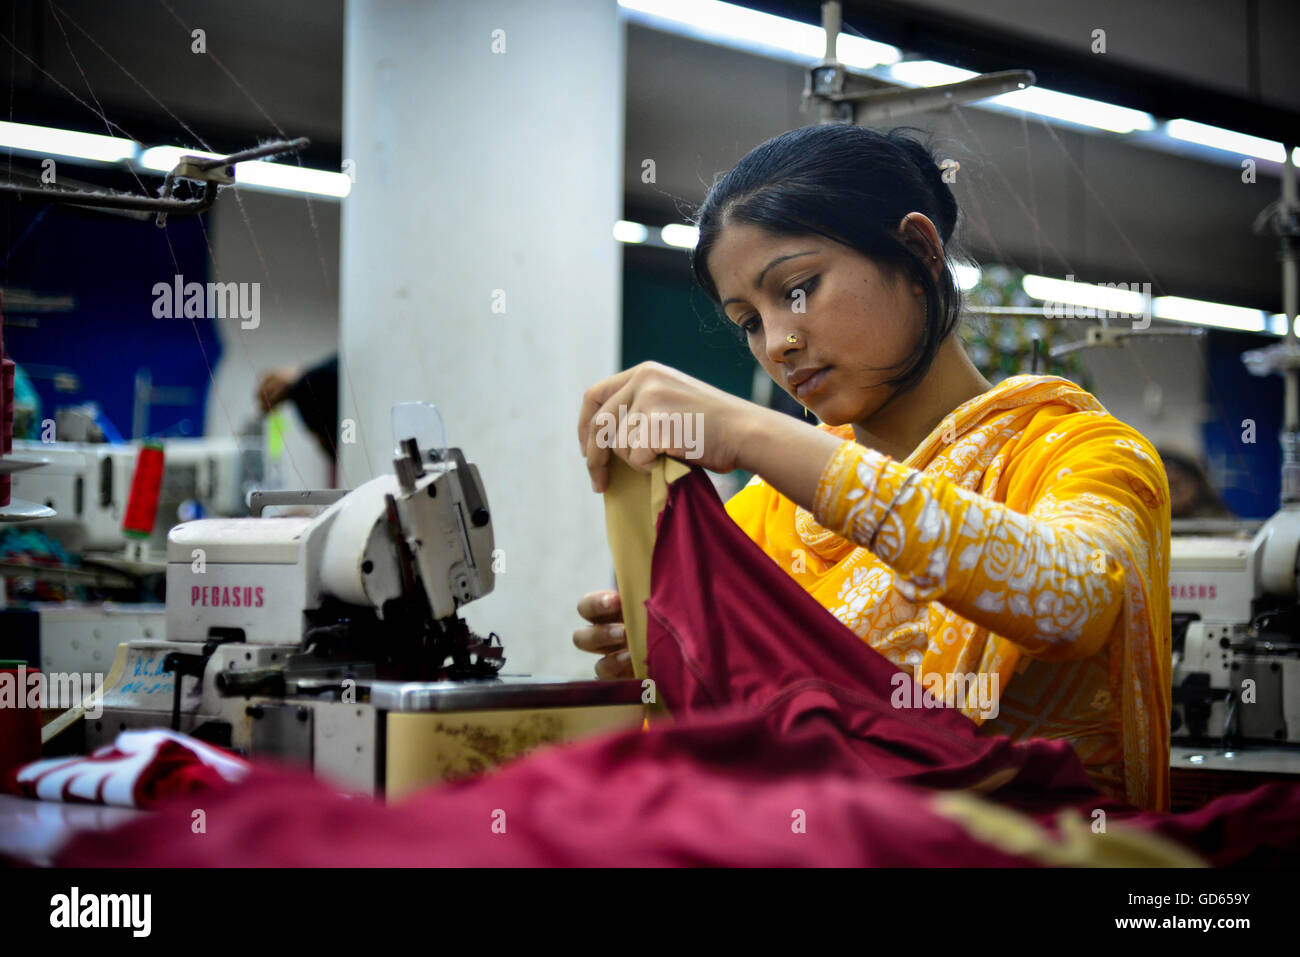 Worker in a textile factory, Bangladesh - Stock Image